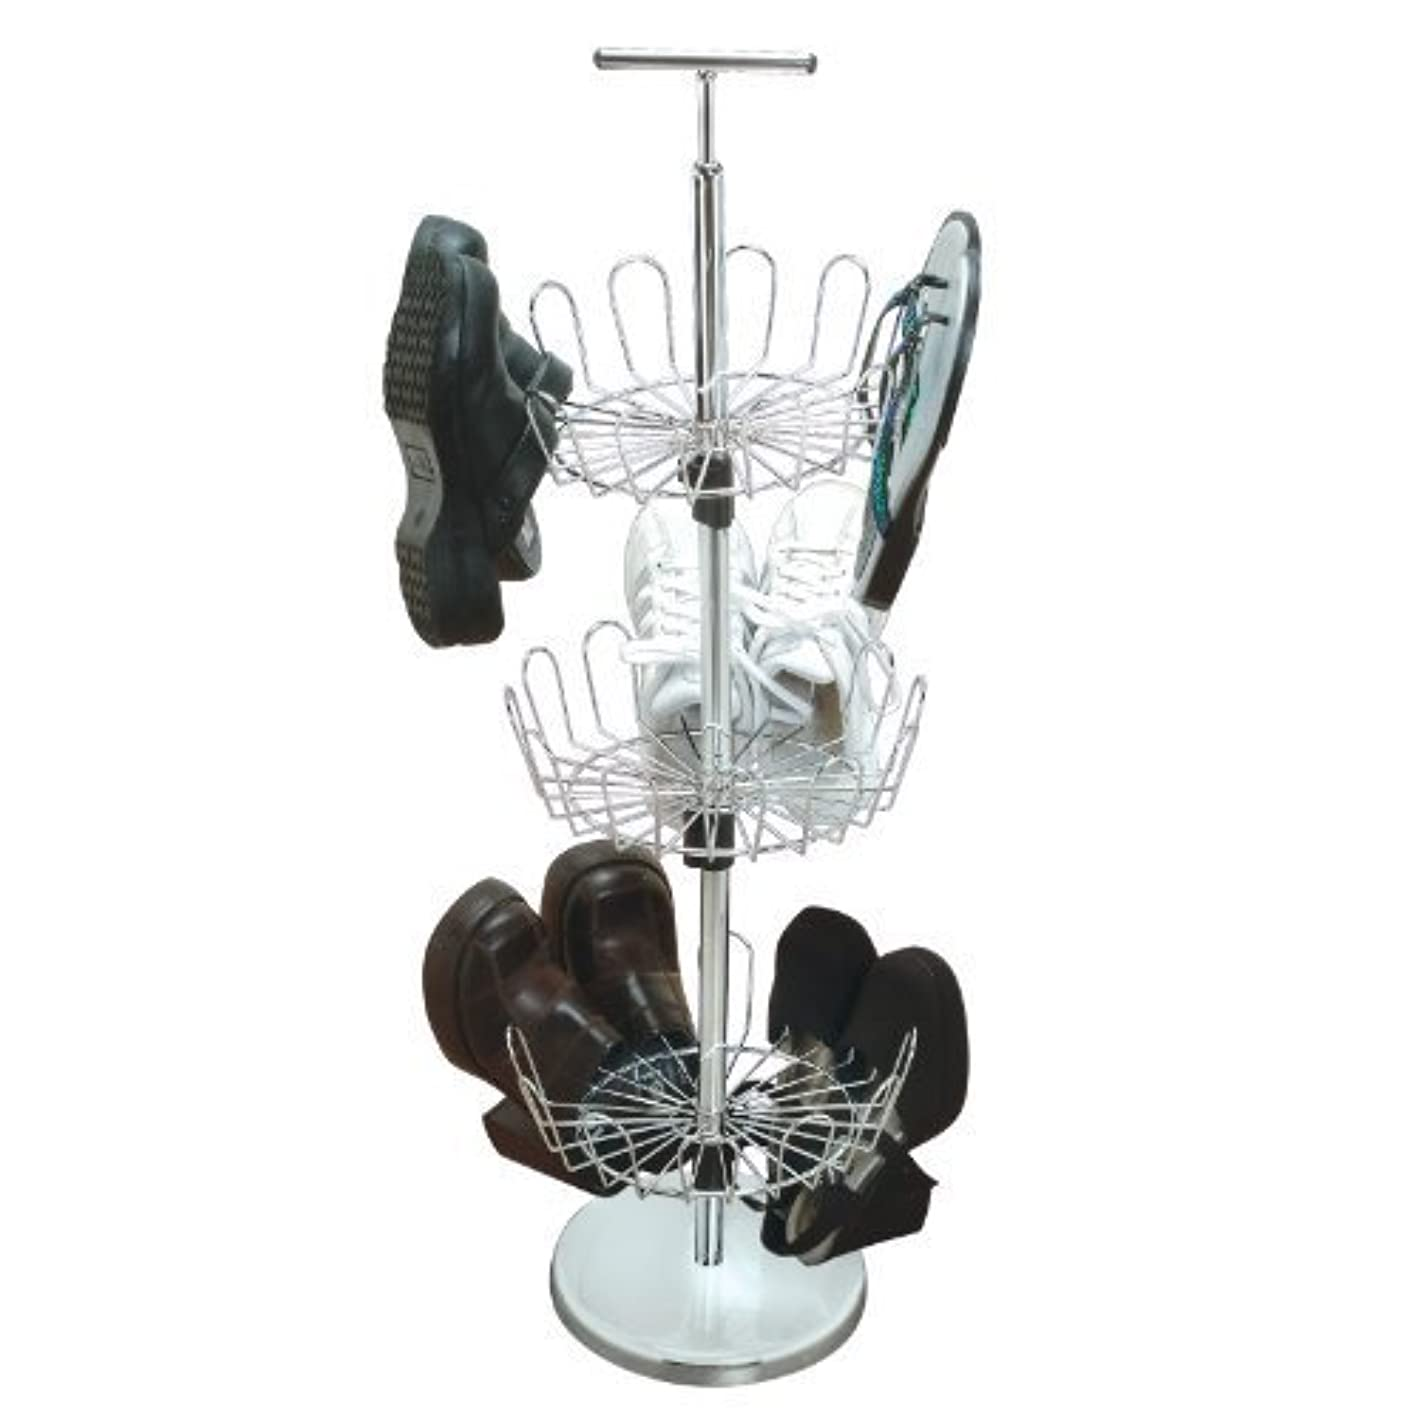 Revolving Shoe Organizer by ETNA PRODUCTS